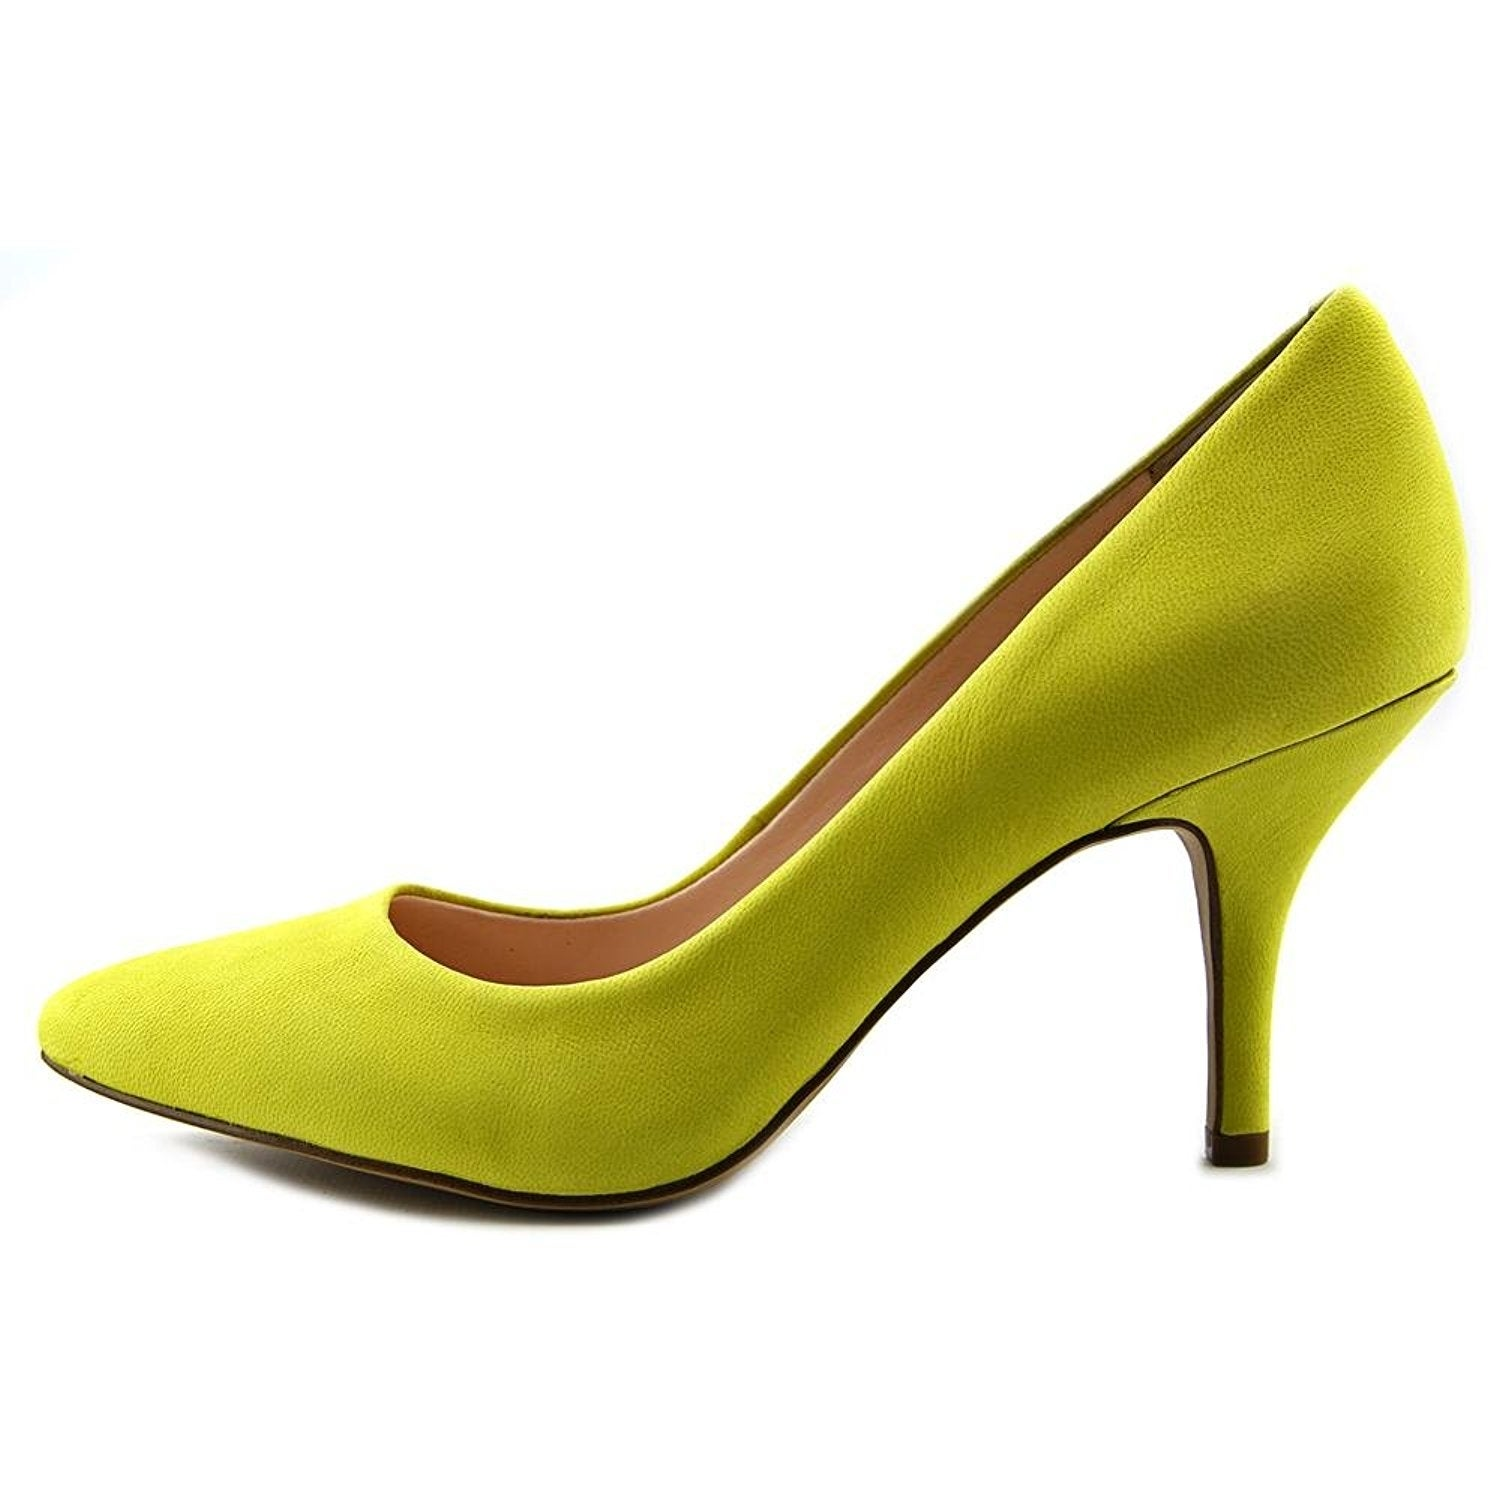 Shop INC International Concepts Damenschuhe ... Zitah Leder Closed Toe ... Damenschuhe 8dd1b1